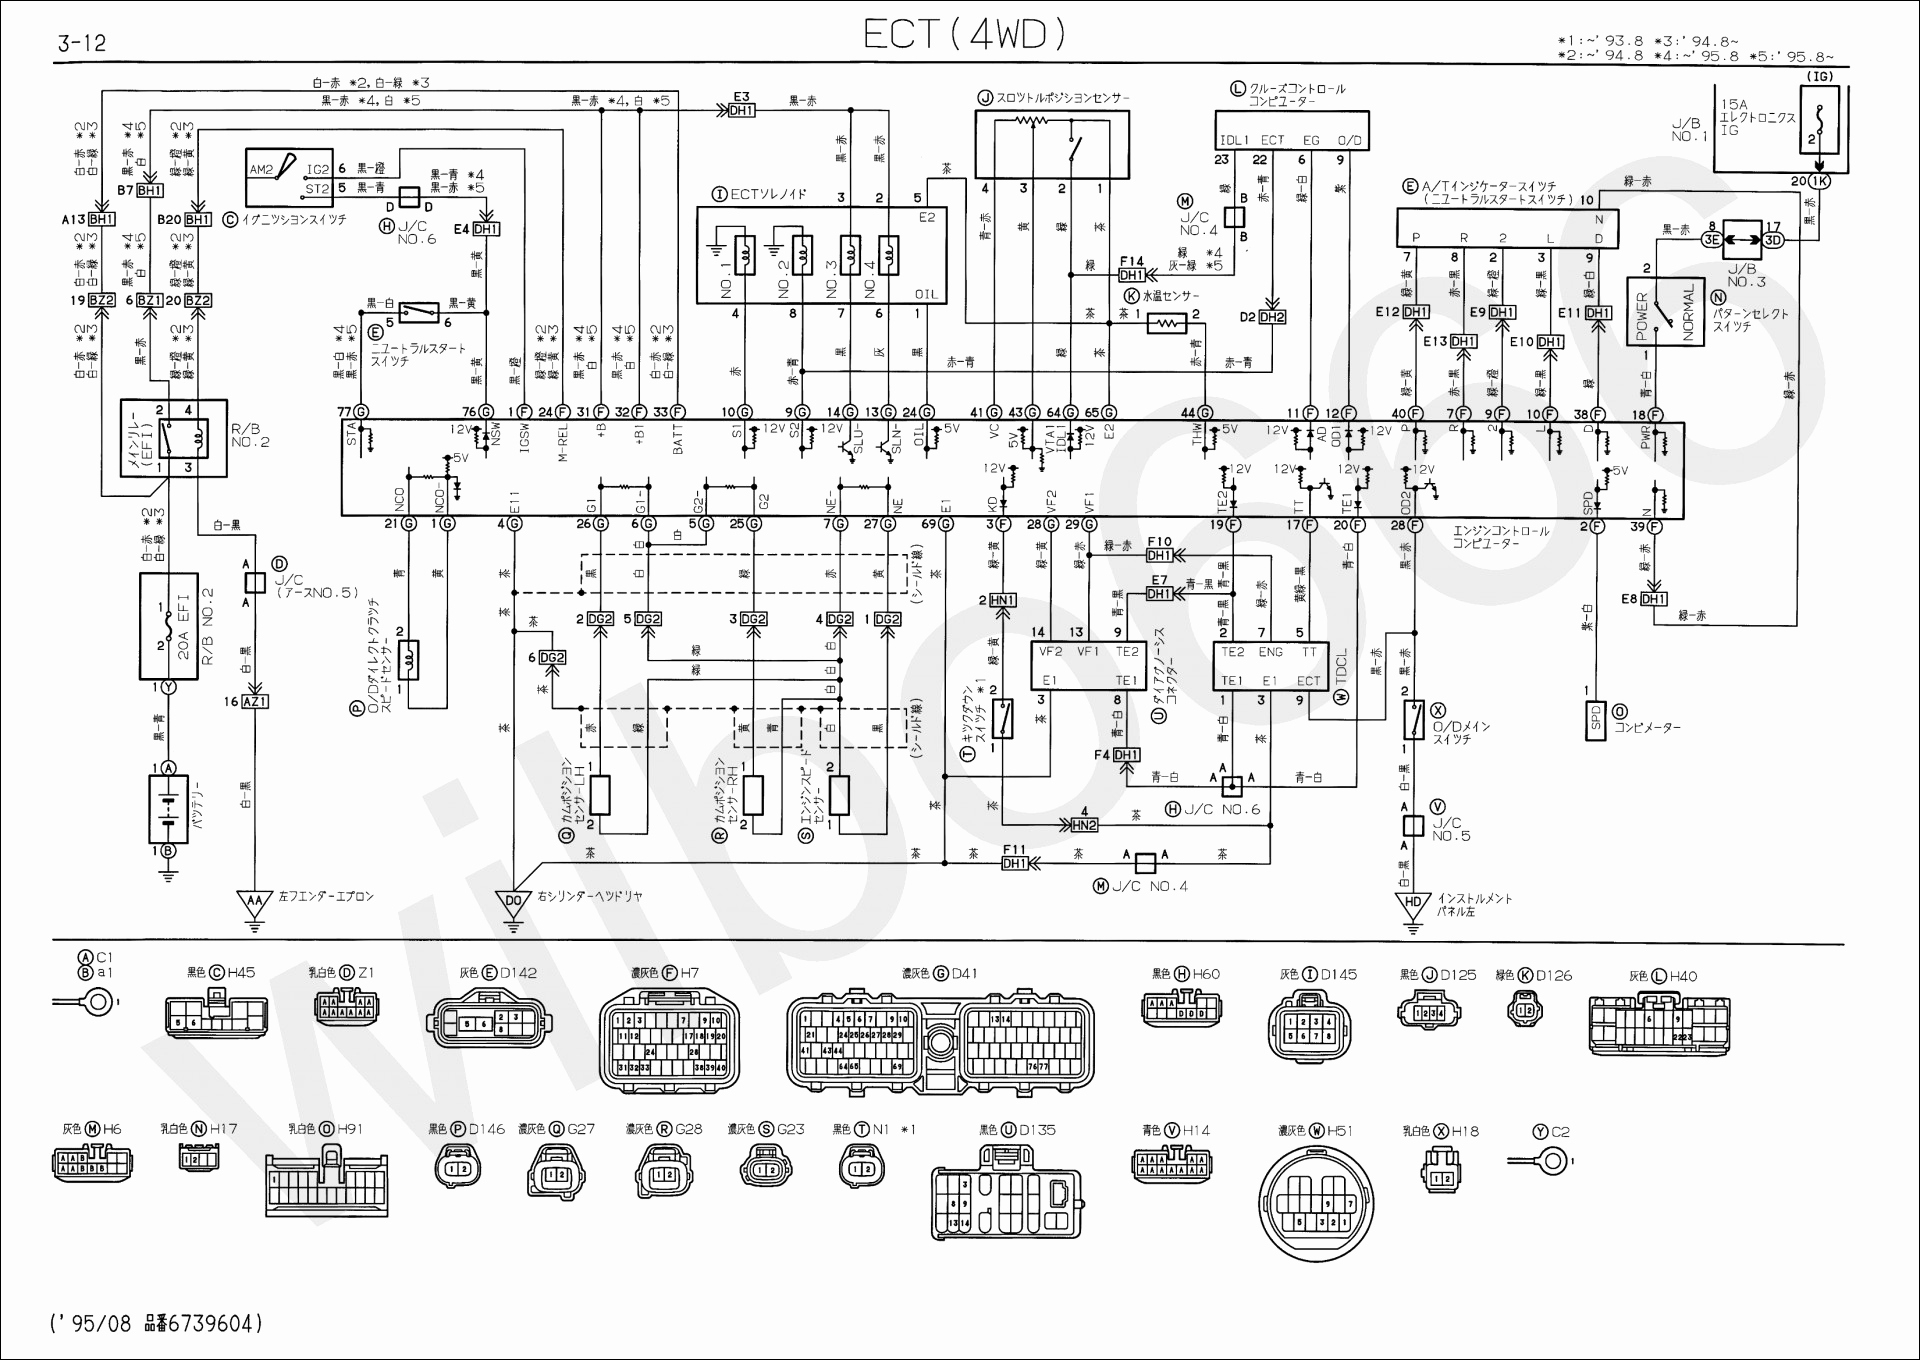 toyota electrical wiring diagram Download-Toyota Alternator Wiring Diagram Beautiful Diagram Engine Electrical Floor Plan 2004 2010 Bmw X3 E83 3 17-o